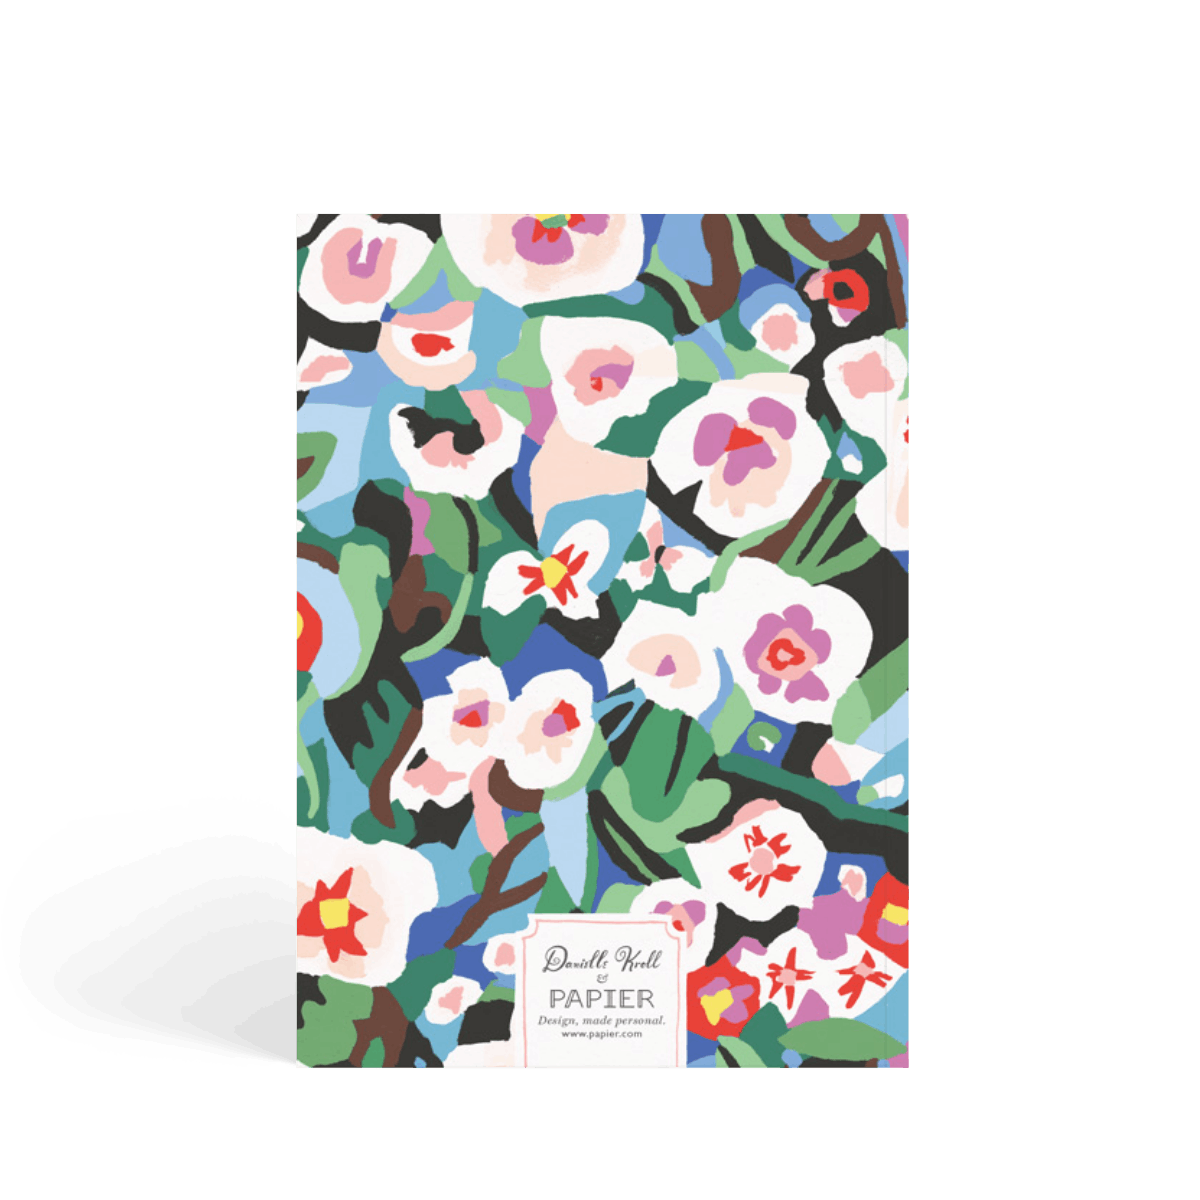 Https%3a%2f%2fwww.papier.com%2fproduct image%2f28273%2f5%2fabstract flowers 7092 arriere 1505821545.png?ixlib=rb 1.1